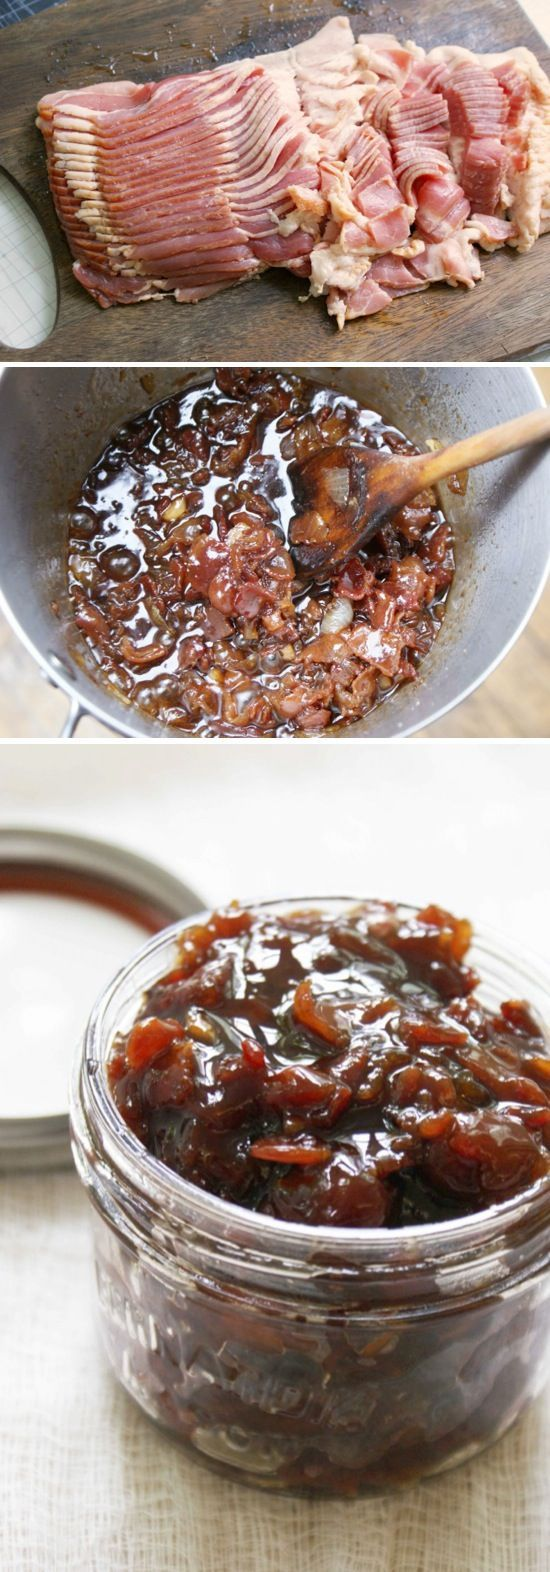 Bacon Jam ~ Yes, you read that right